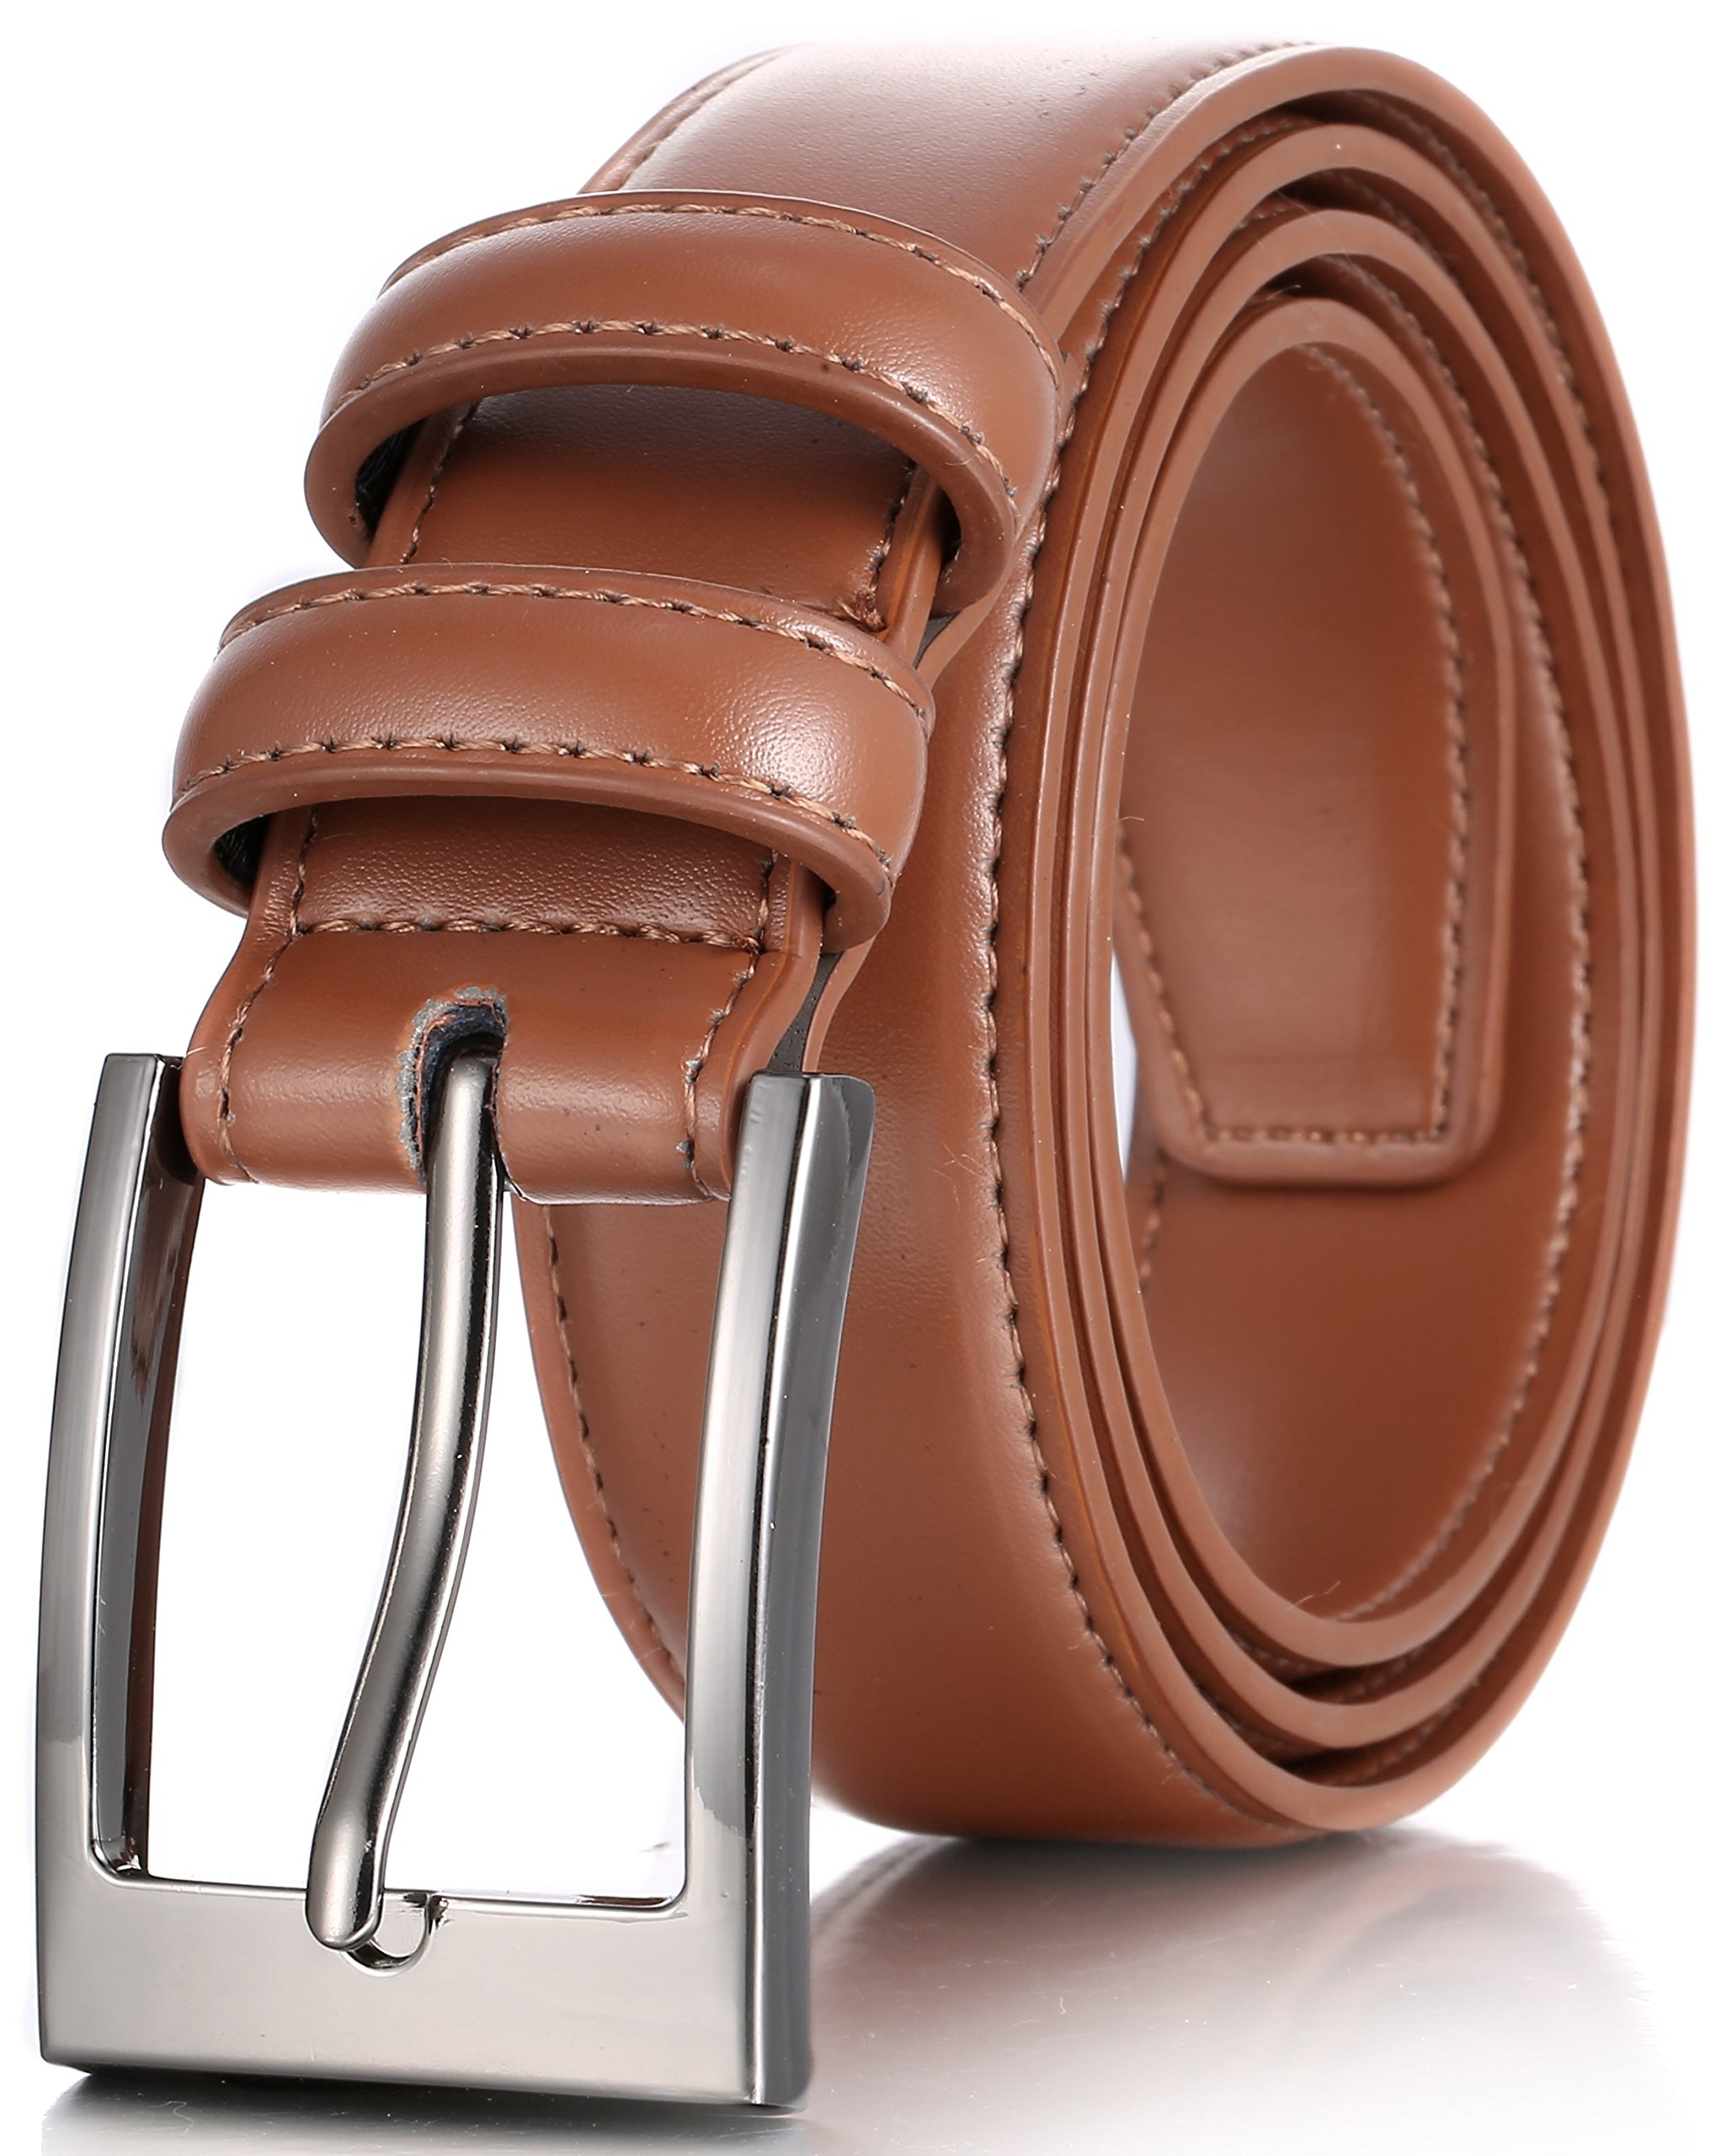 Marino's Men Genuine Leather Dress Belt with Single Prong Buckle - Tan - 34